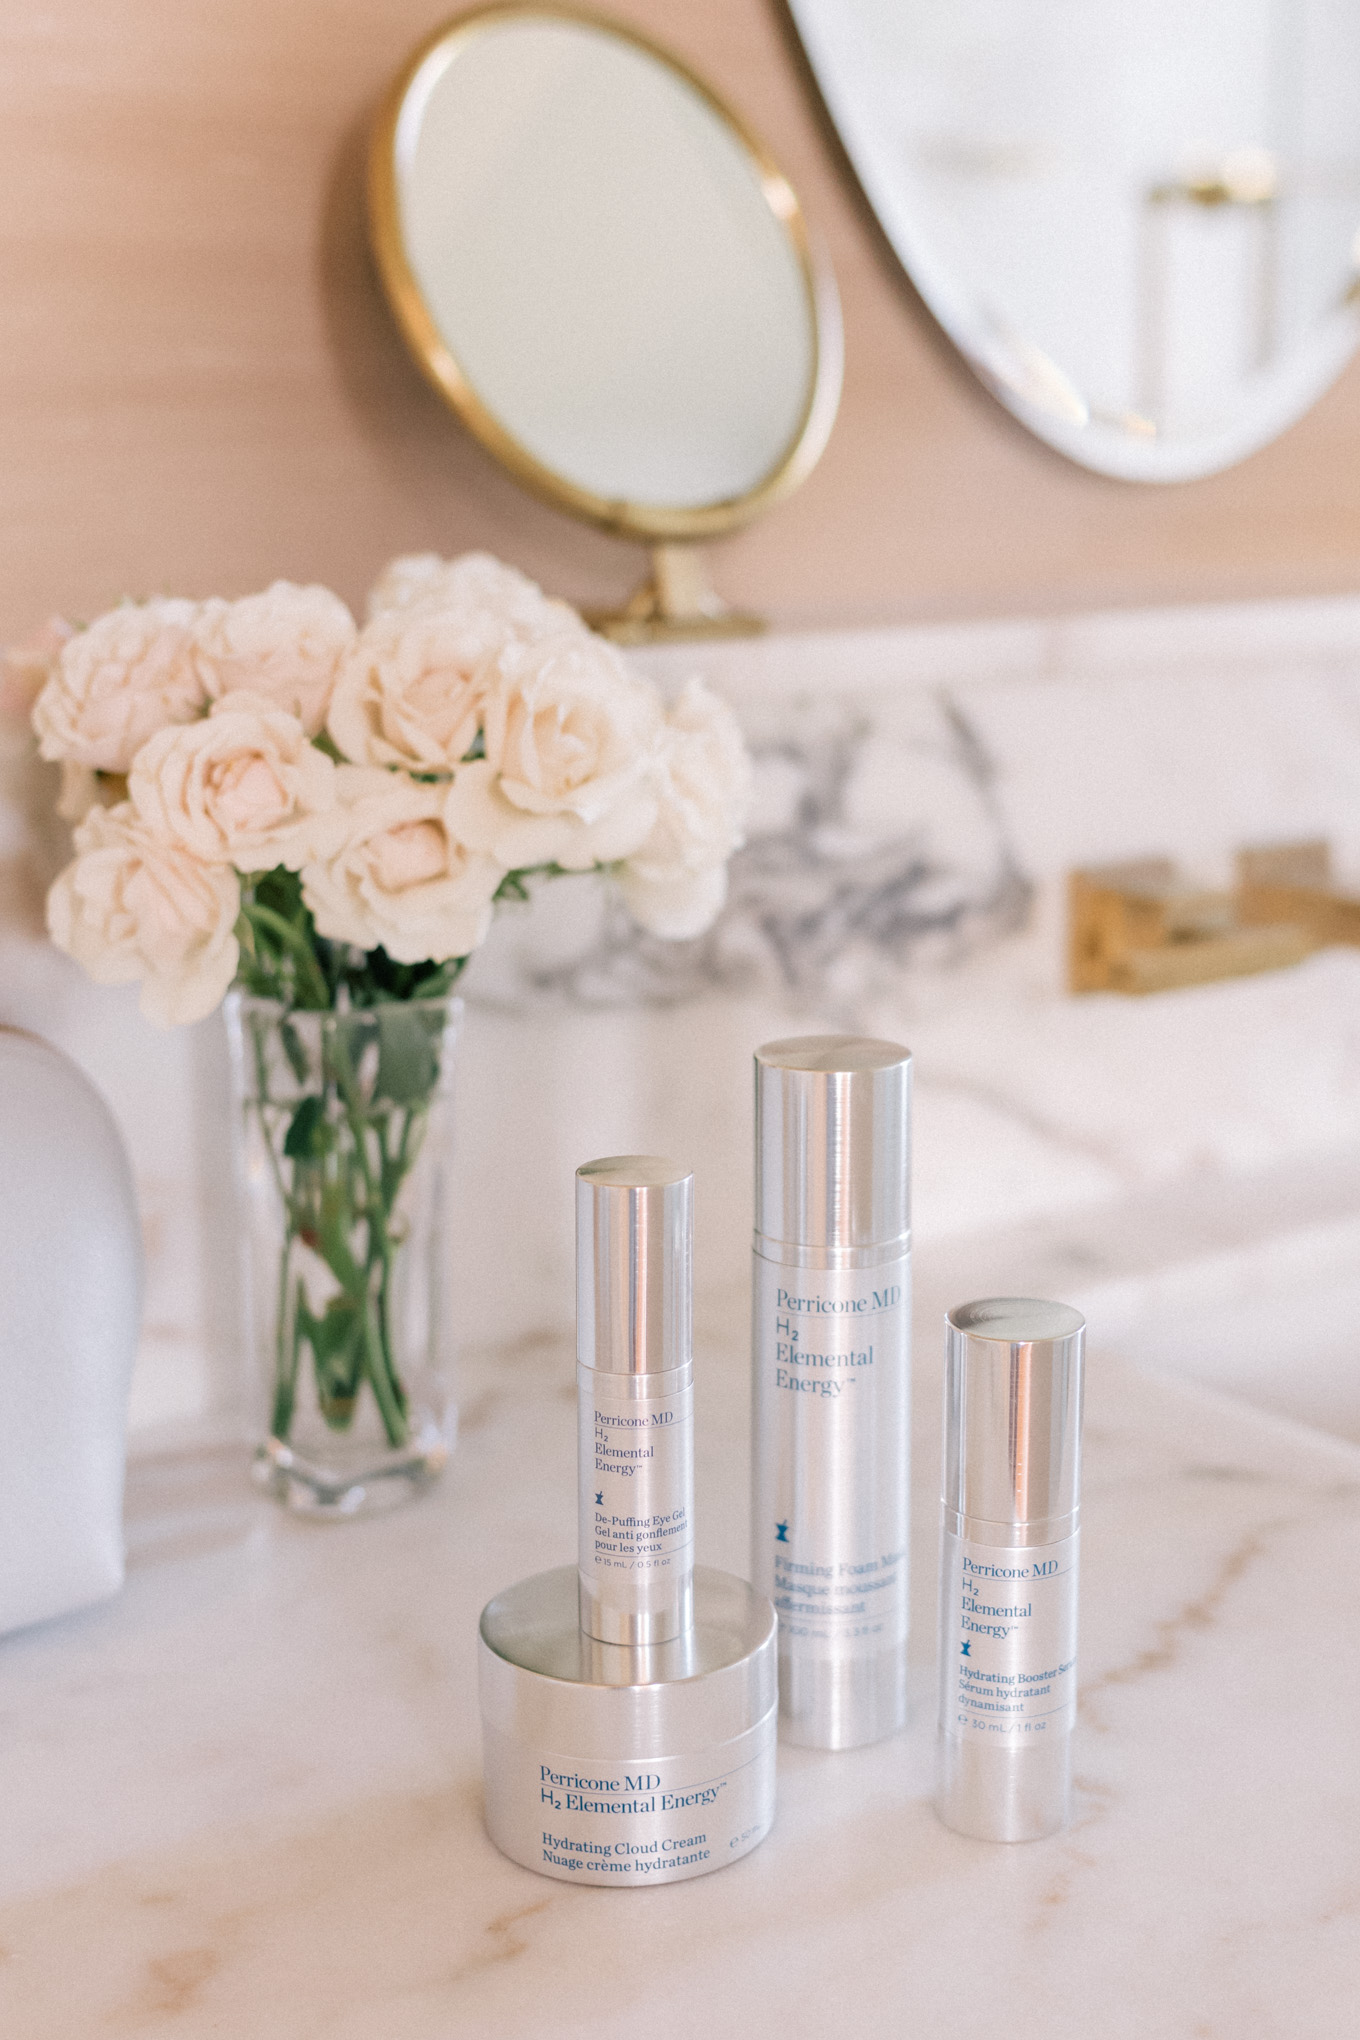 gmg-day-to-night-skincare-1001912-2